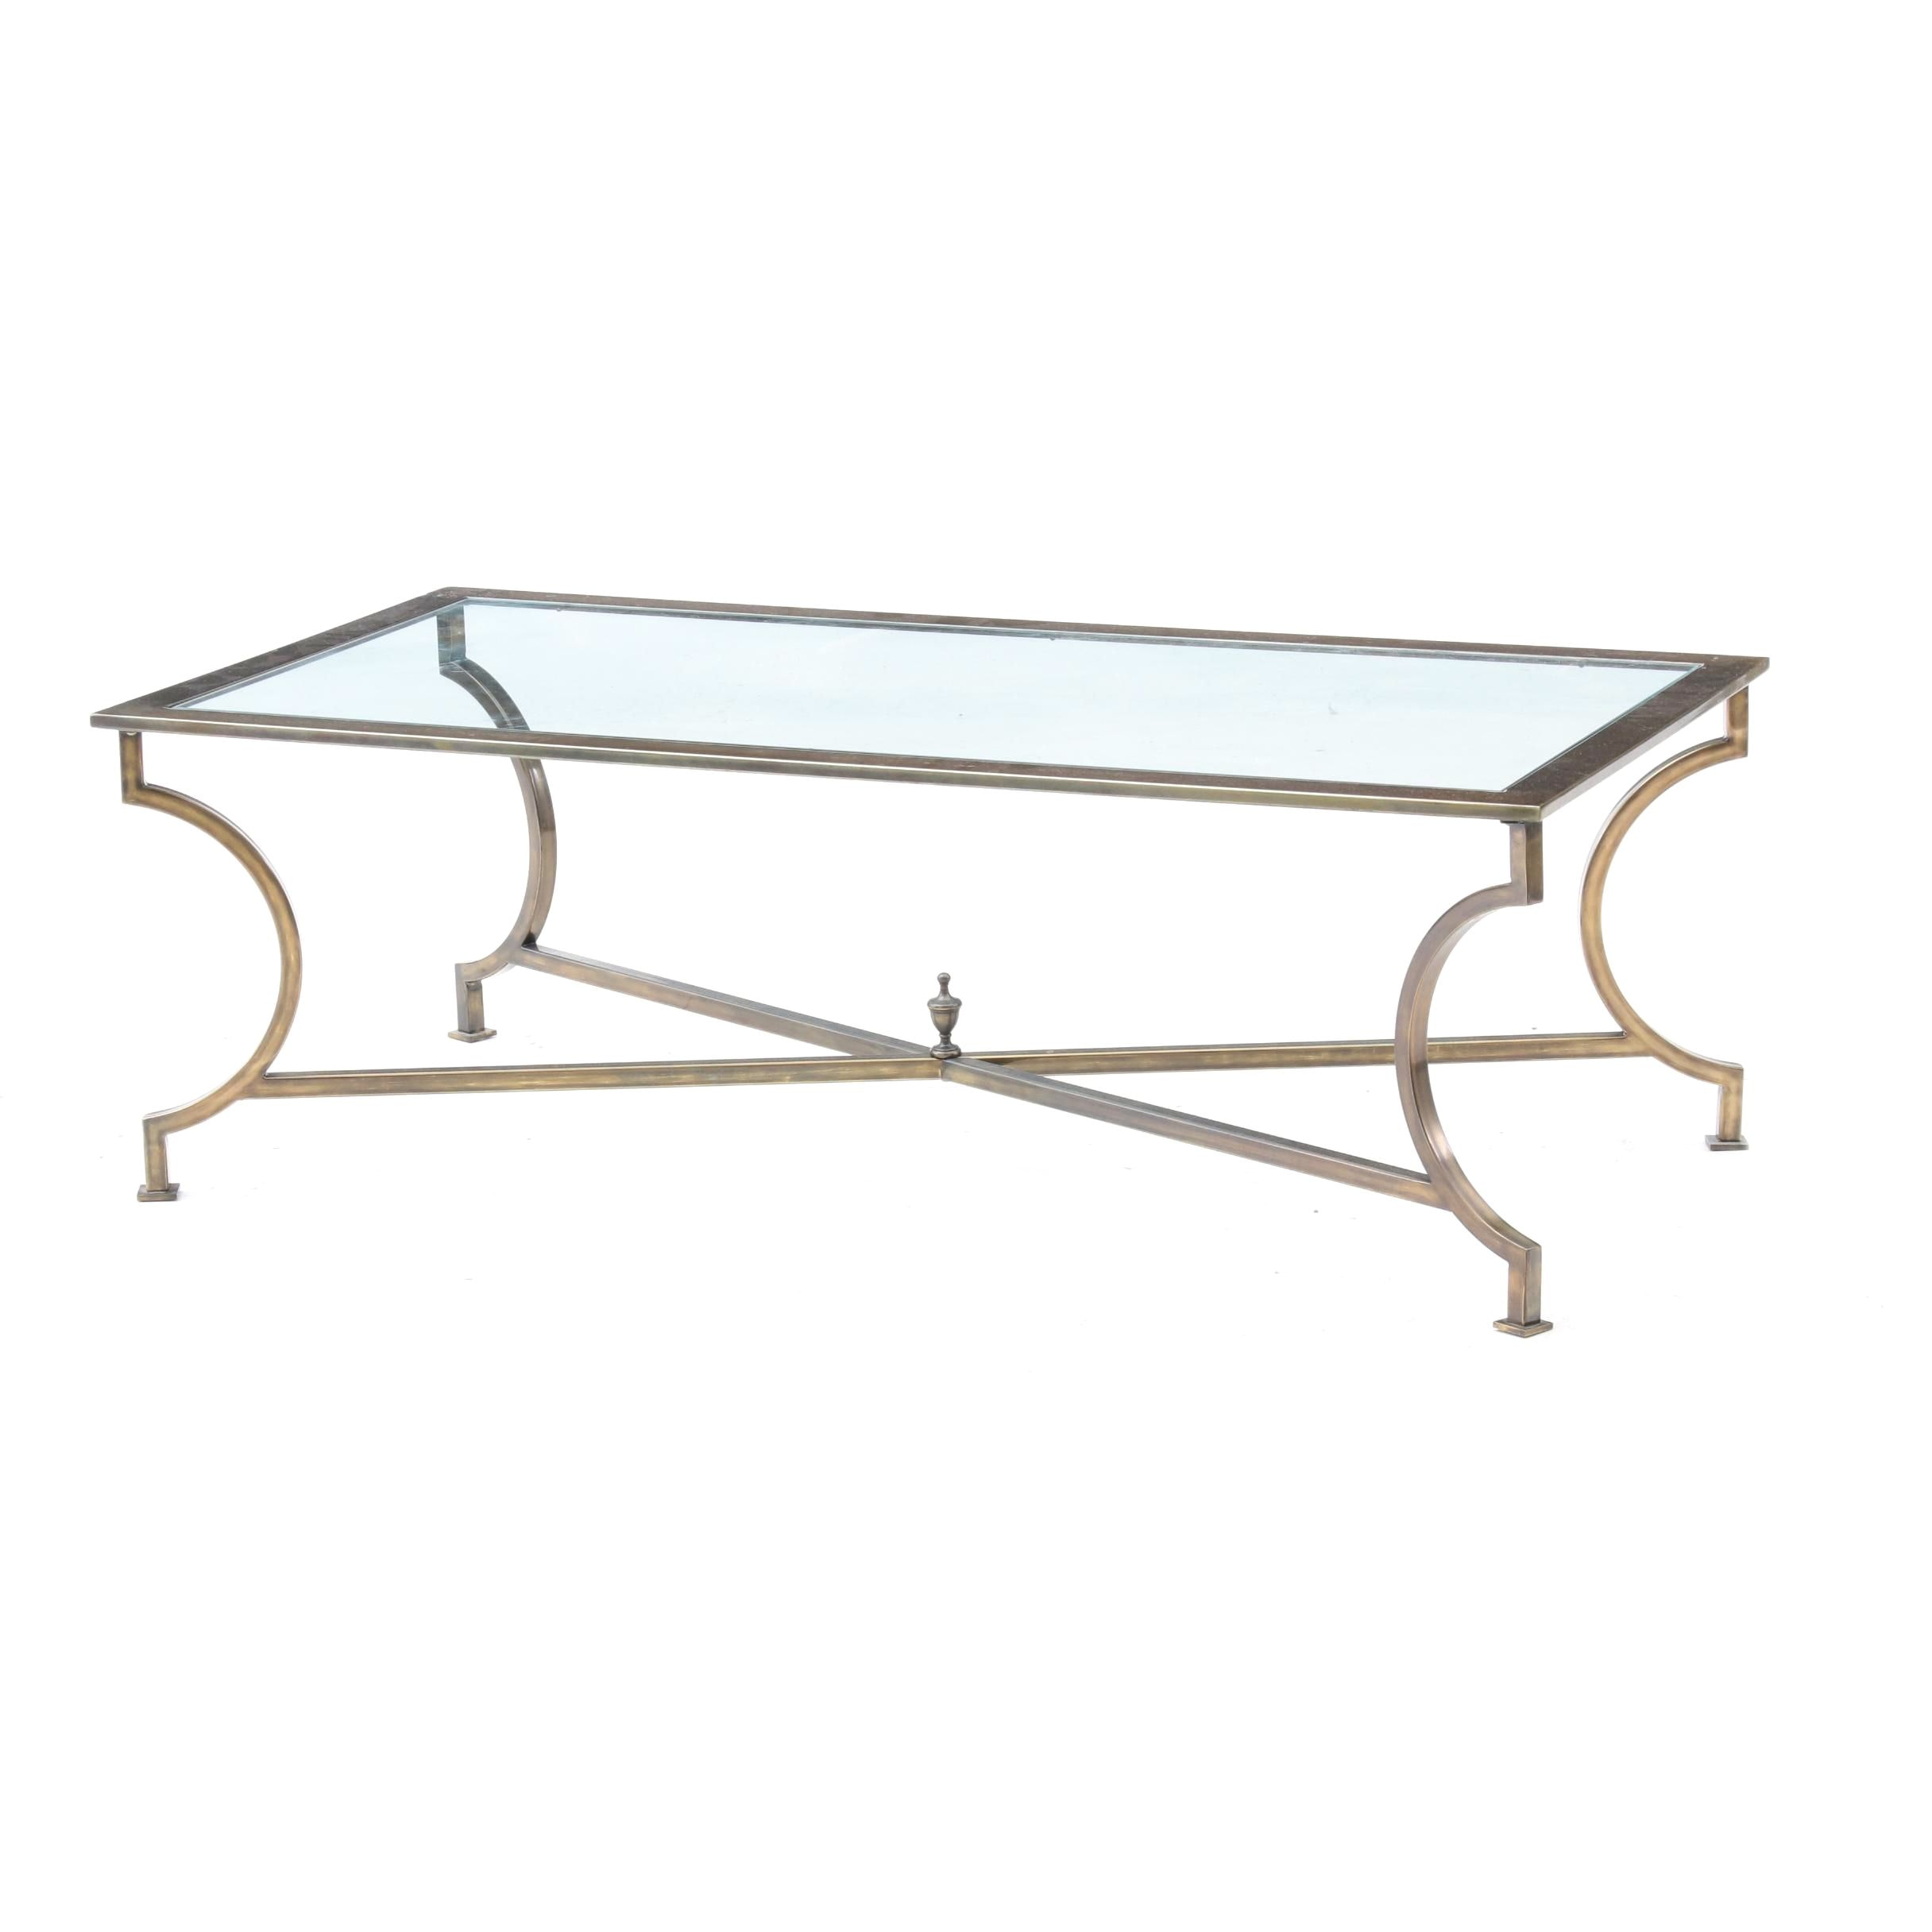 Labarge Style Brass Coffee Table with Glass Top